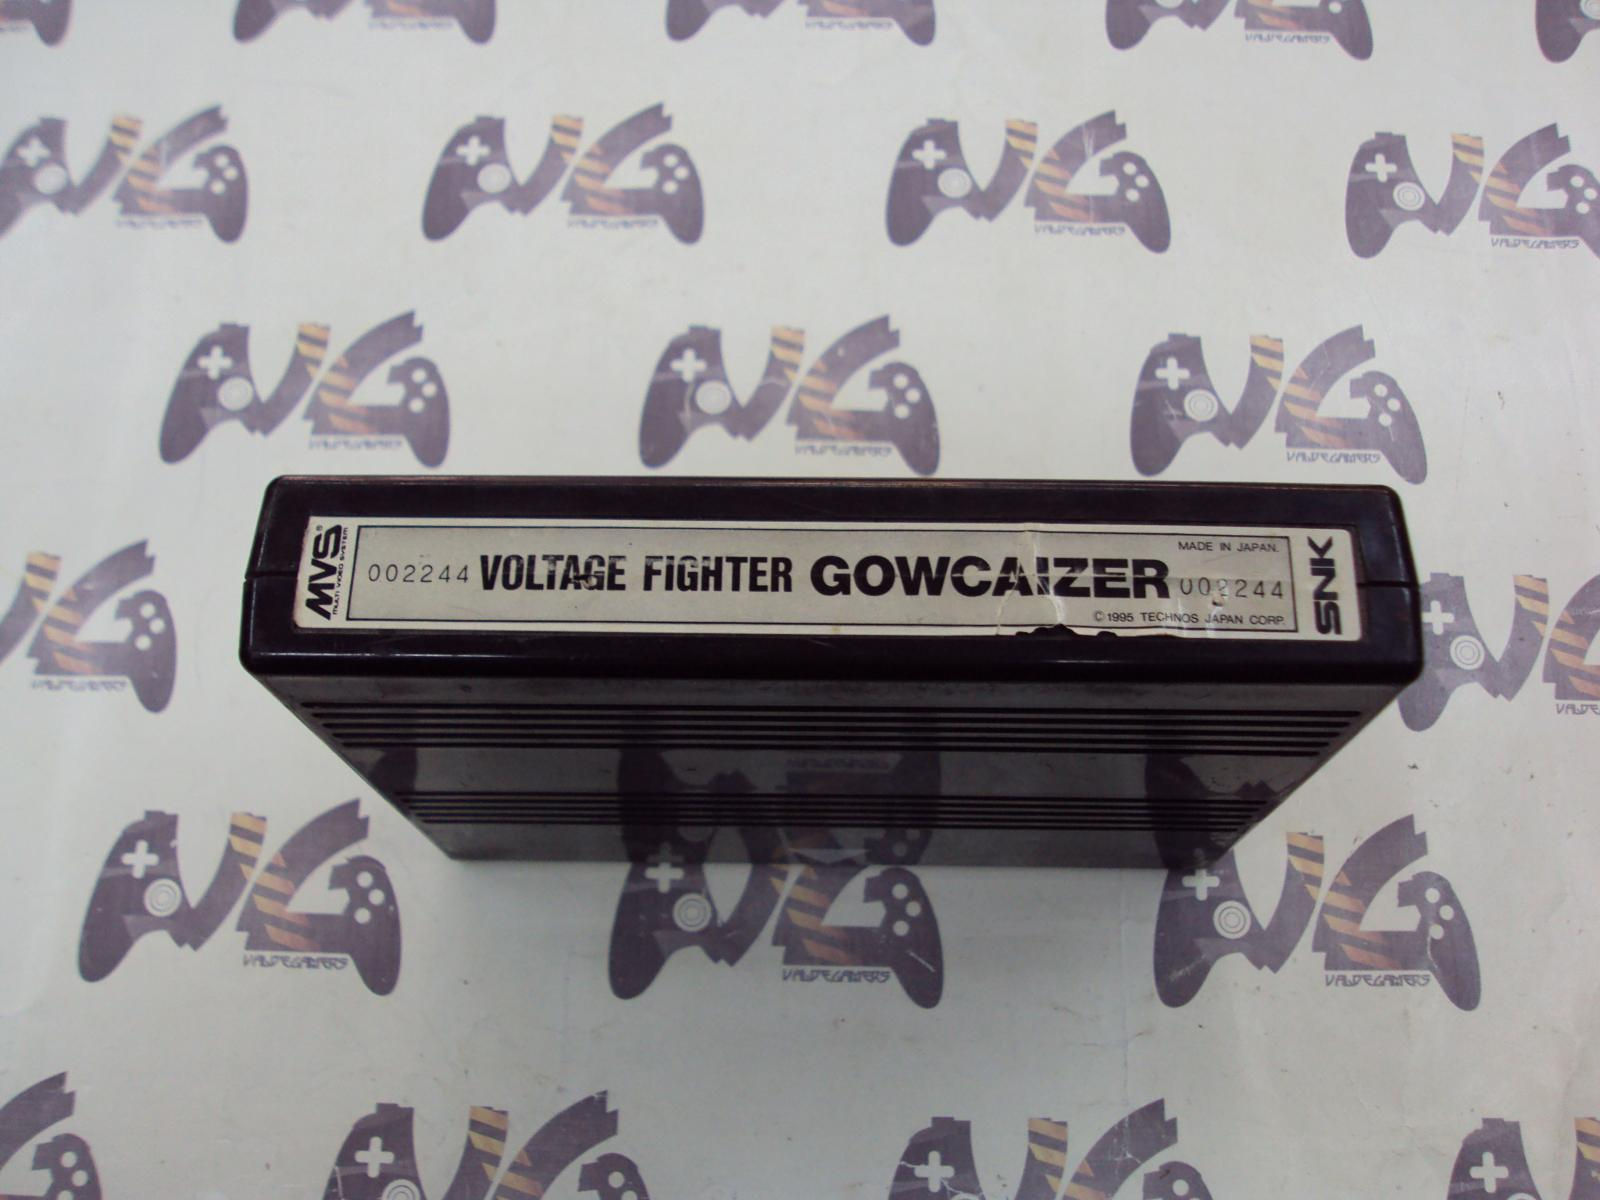 Voltage Fighter Gowcaizer - MVS